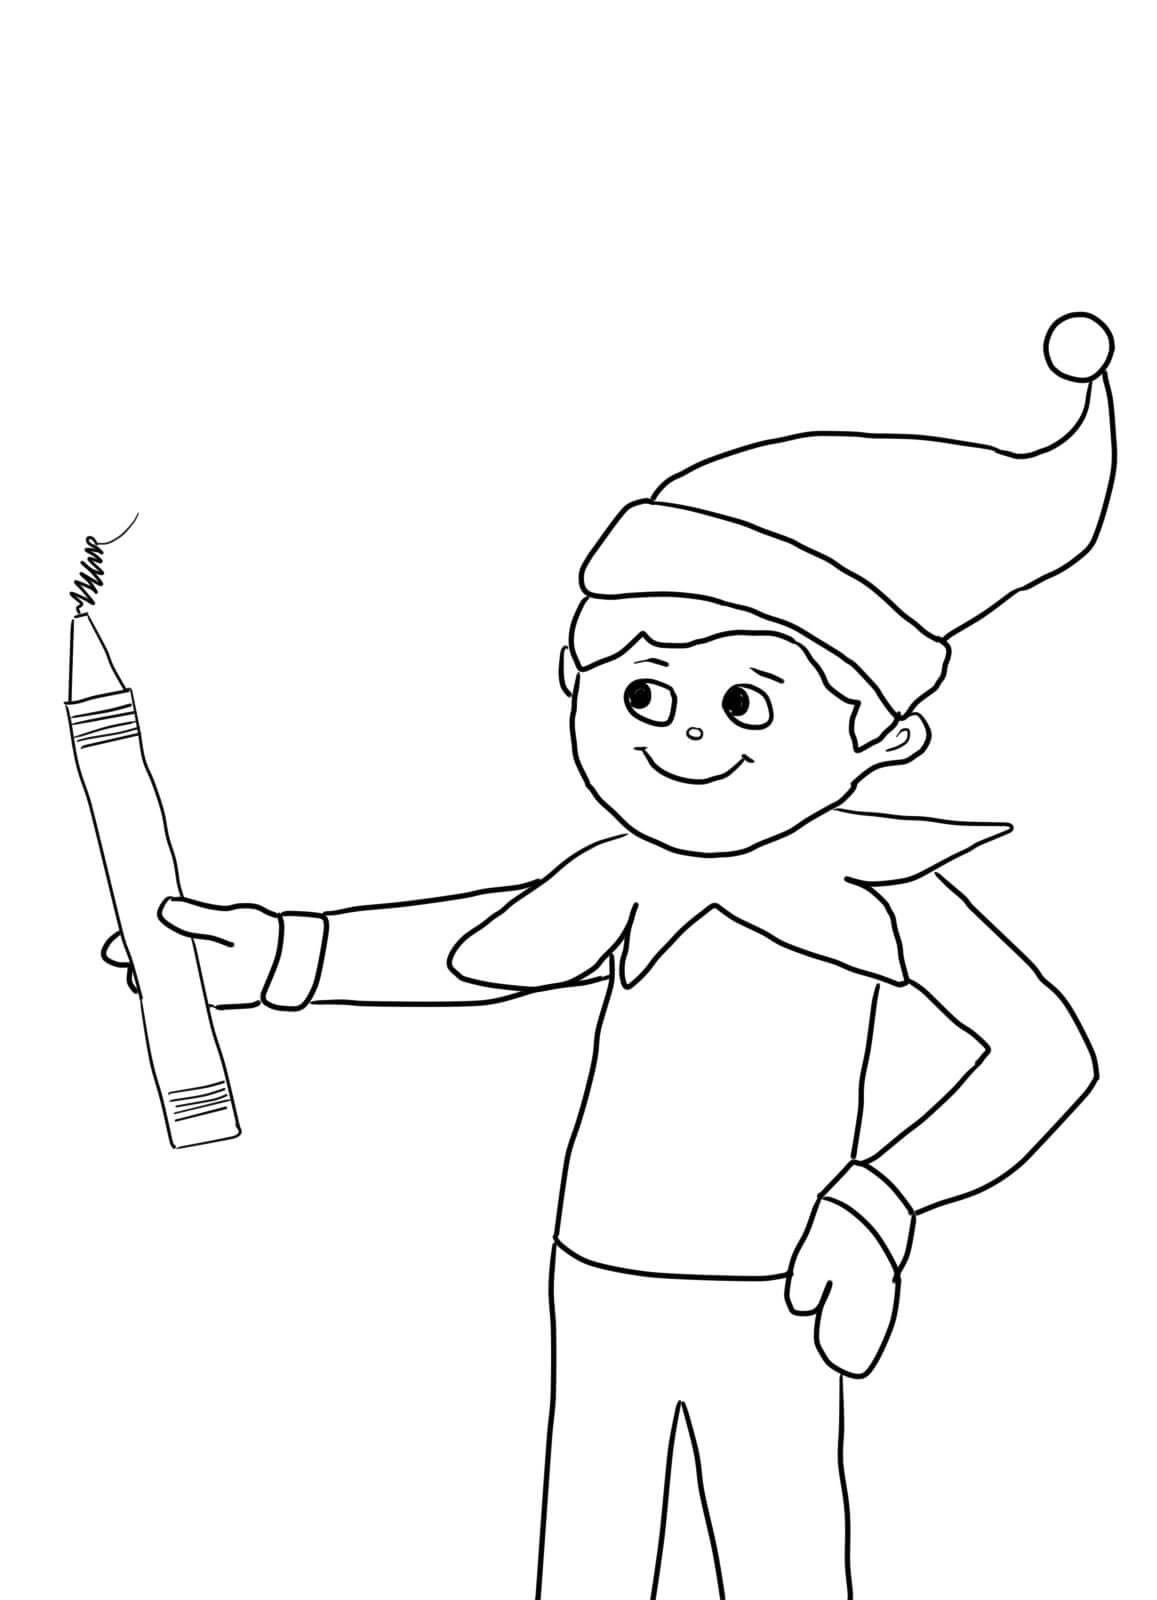 elf on the shelf coloring page christmas elf coloring page new elf the shelf coloring page the elf on shelf coloring